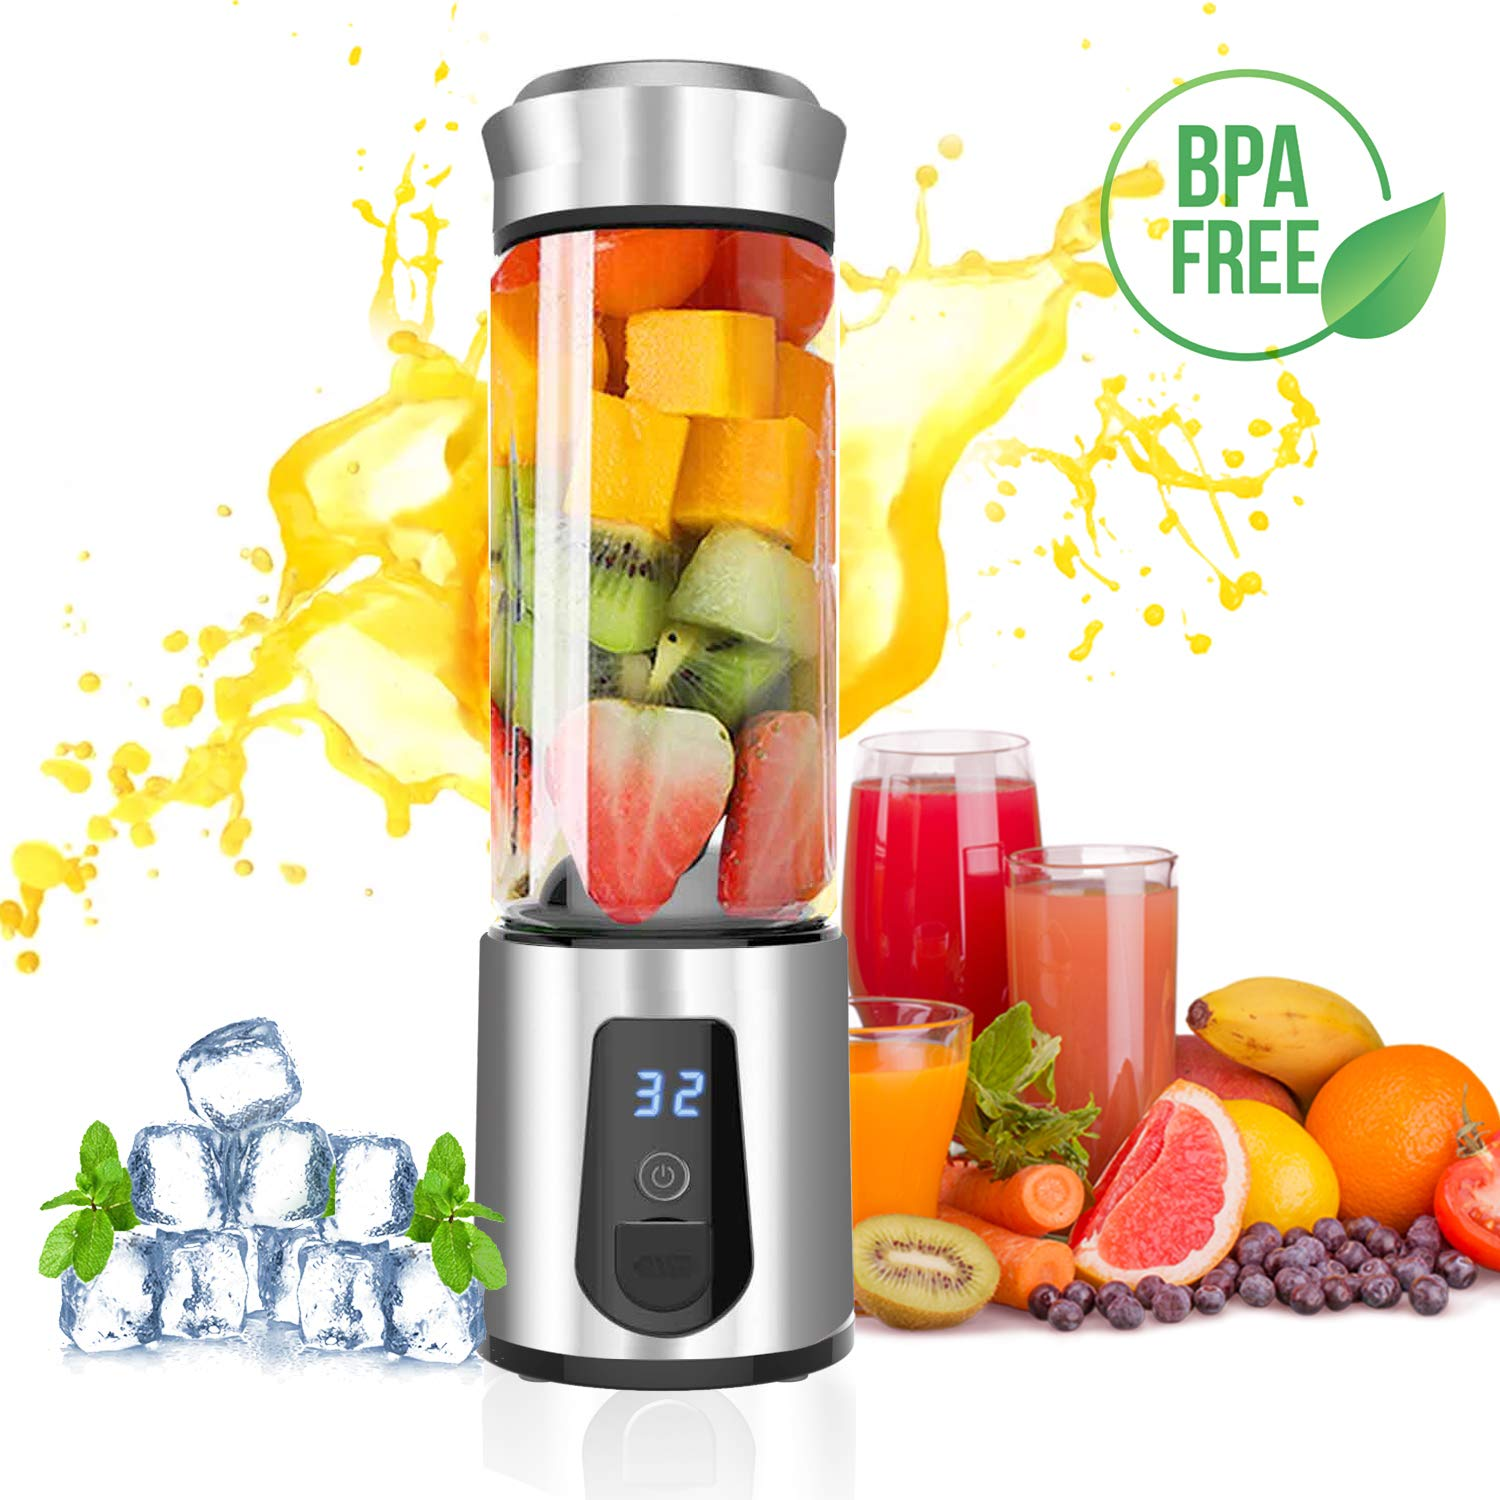 Personal Blender,AUZKIN Cordless Portable Blender Rechargeable USB Juicer Blender Small Blender – Juice,Shakes,Smoothies,Baby Food on the go Outdoor Travel Office,Borosilicate Glass,BPA Free,15OZ